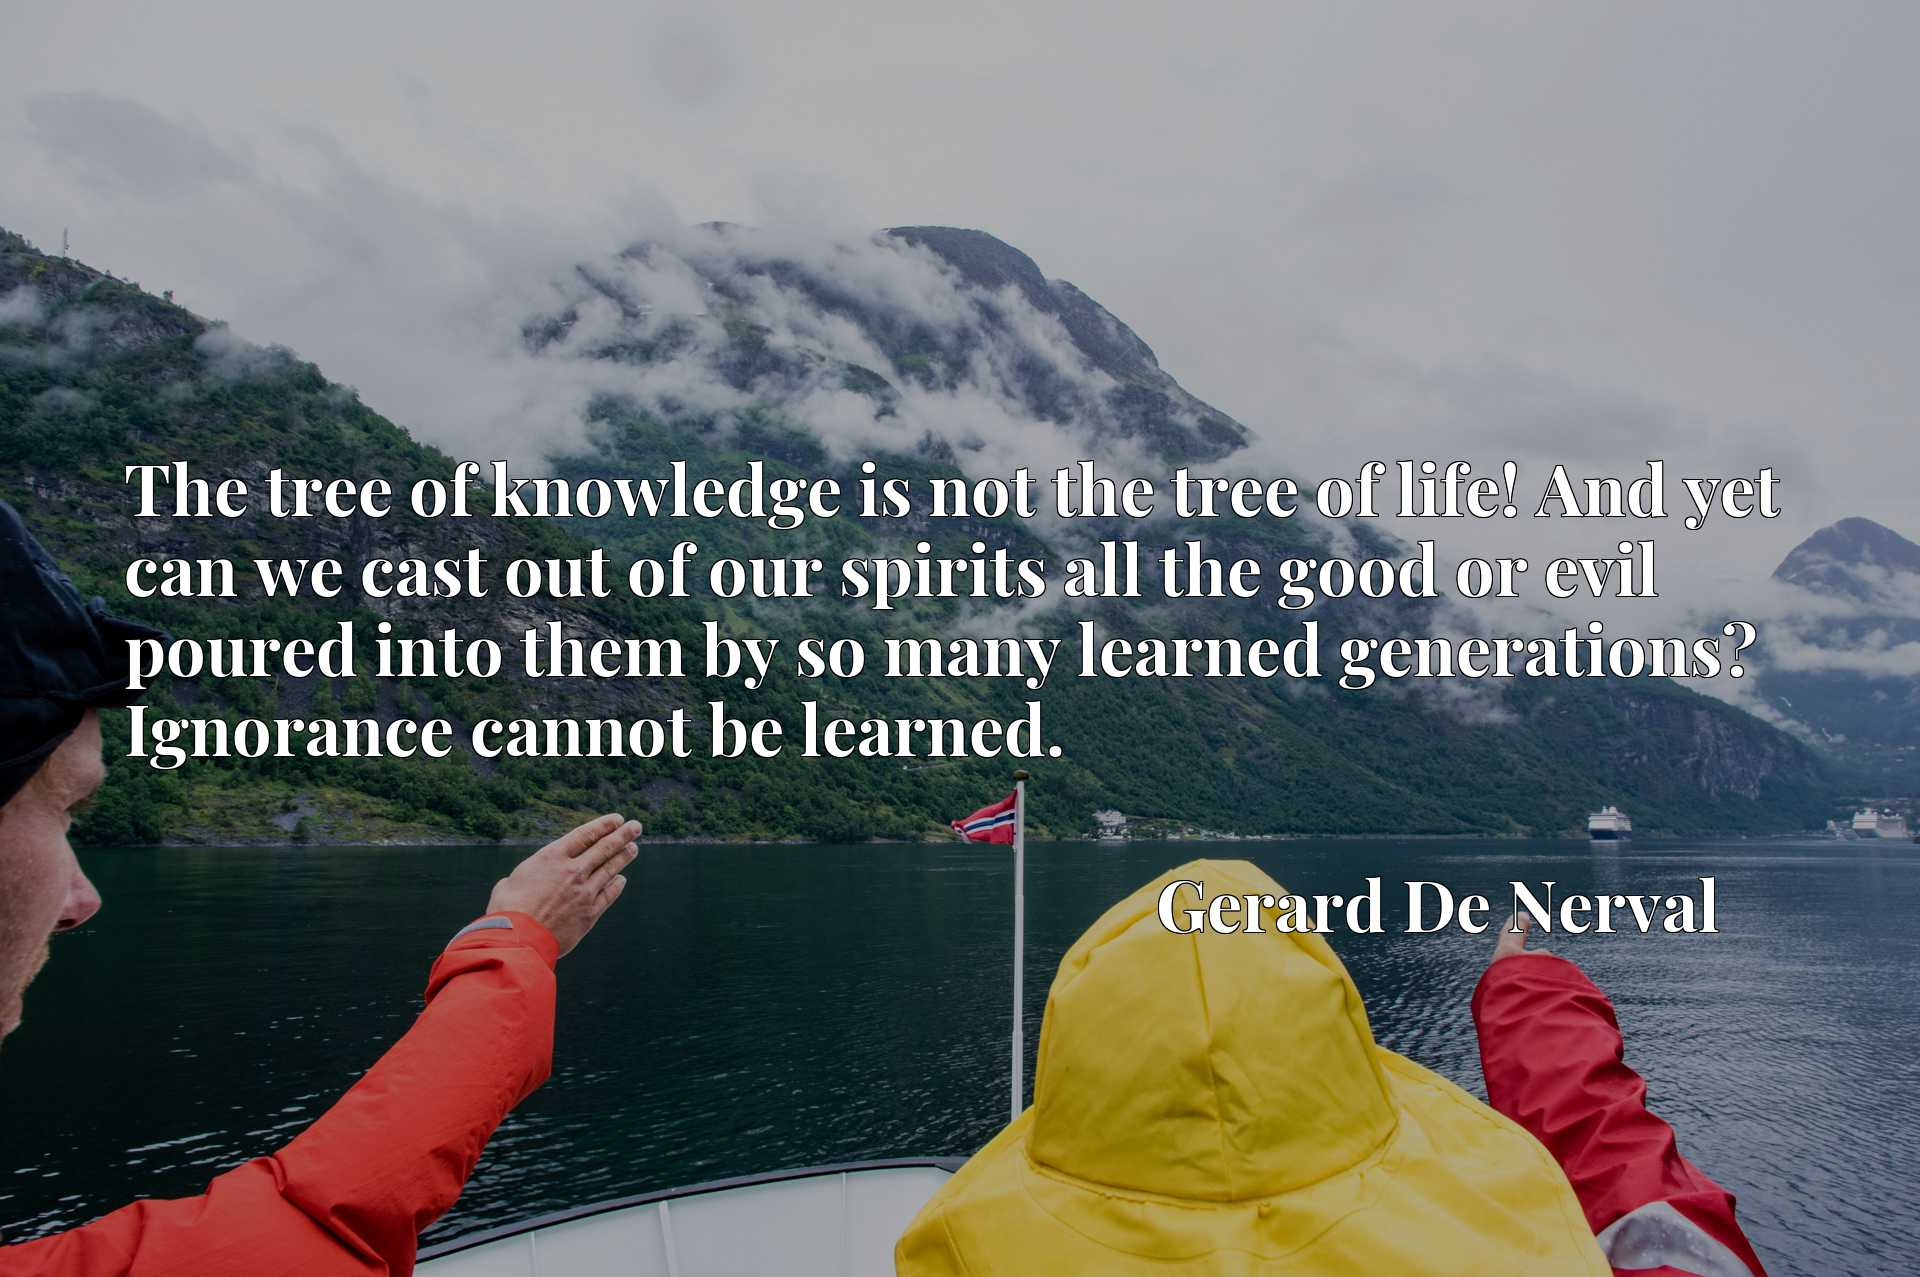 The tree of knowledge is not the tree of life! And yet can we cast out of our spirits all the good or evil poured into them by so many learned generations? Ignorance cannot be learned.